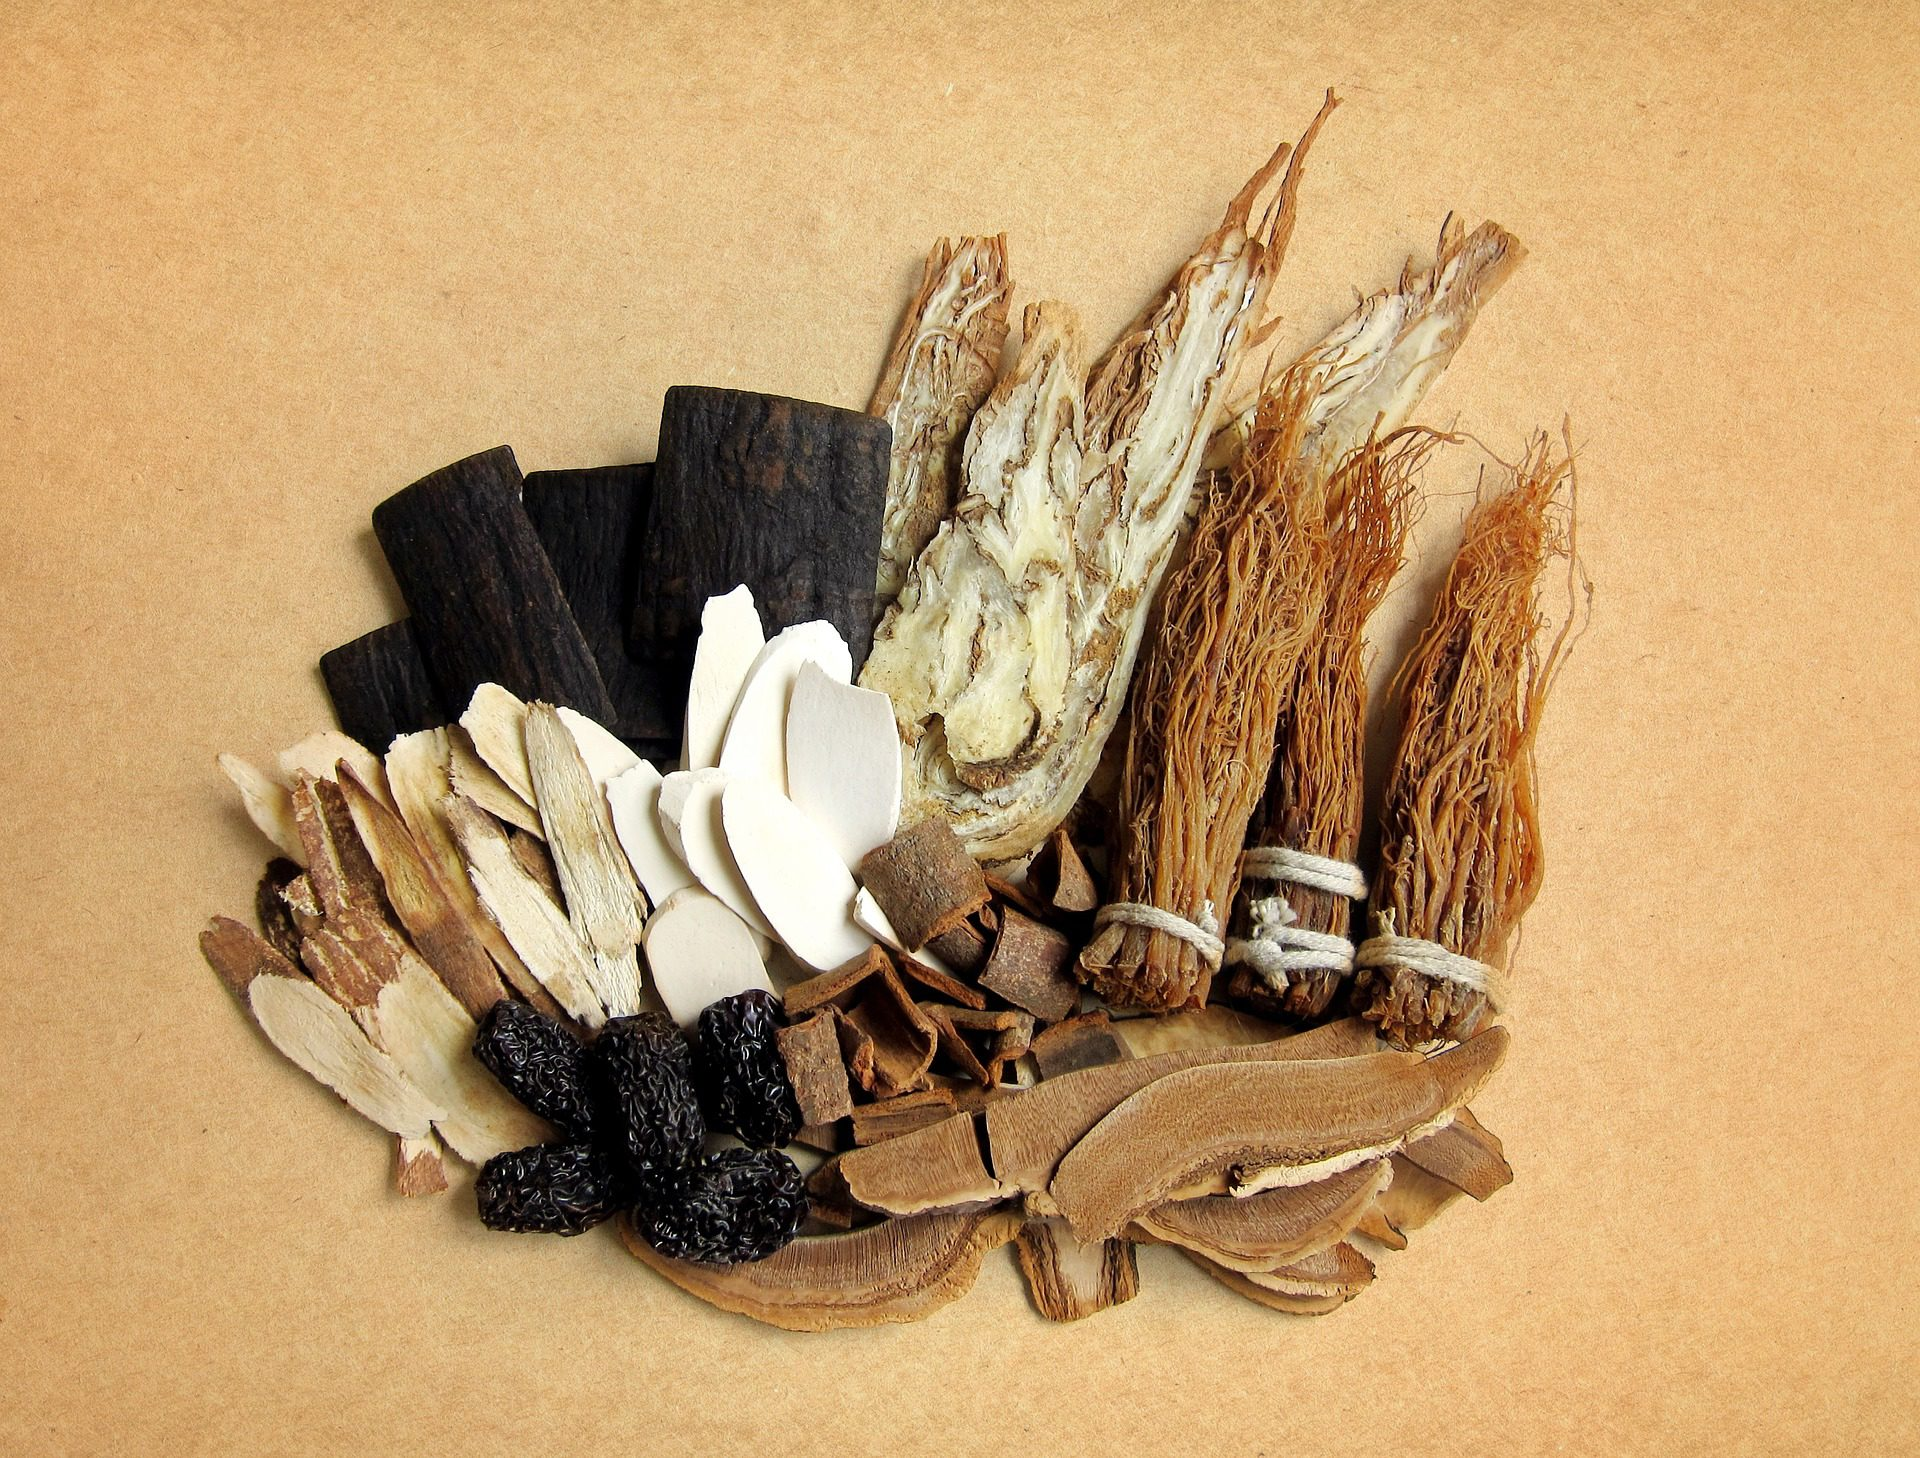 a selection of common raw Chinese herbs